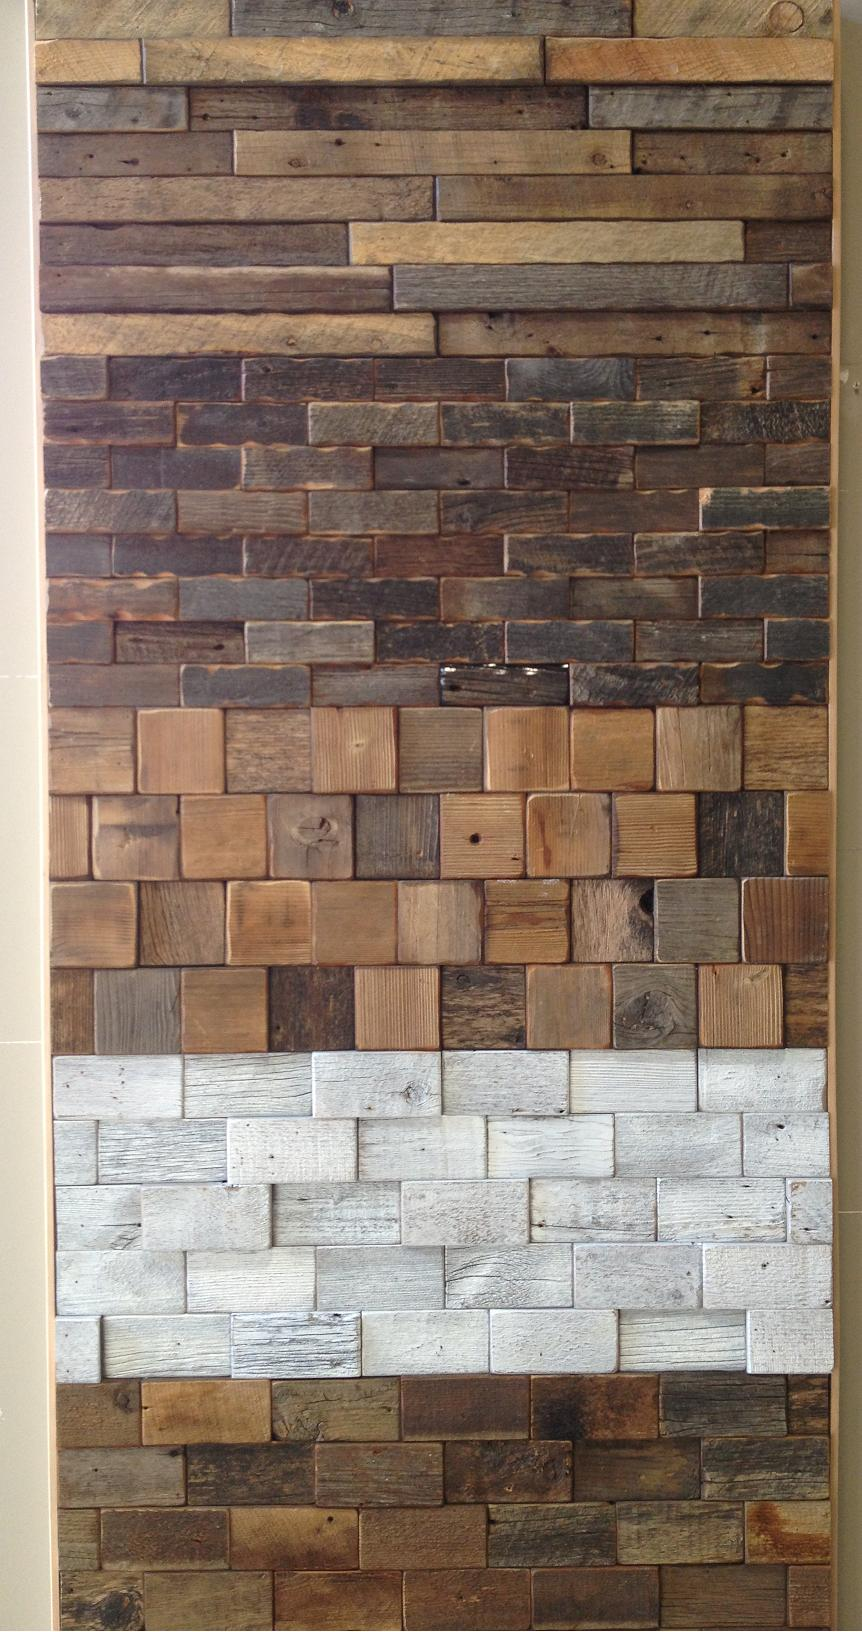 Reclaimed Wood Wall Tiles, The Eco Floor Store